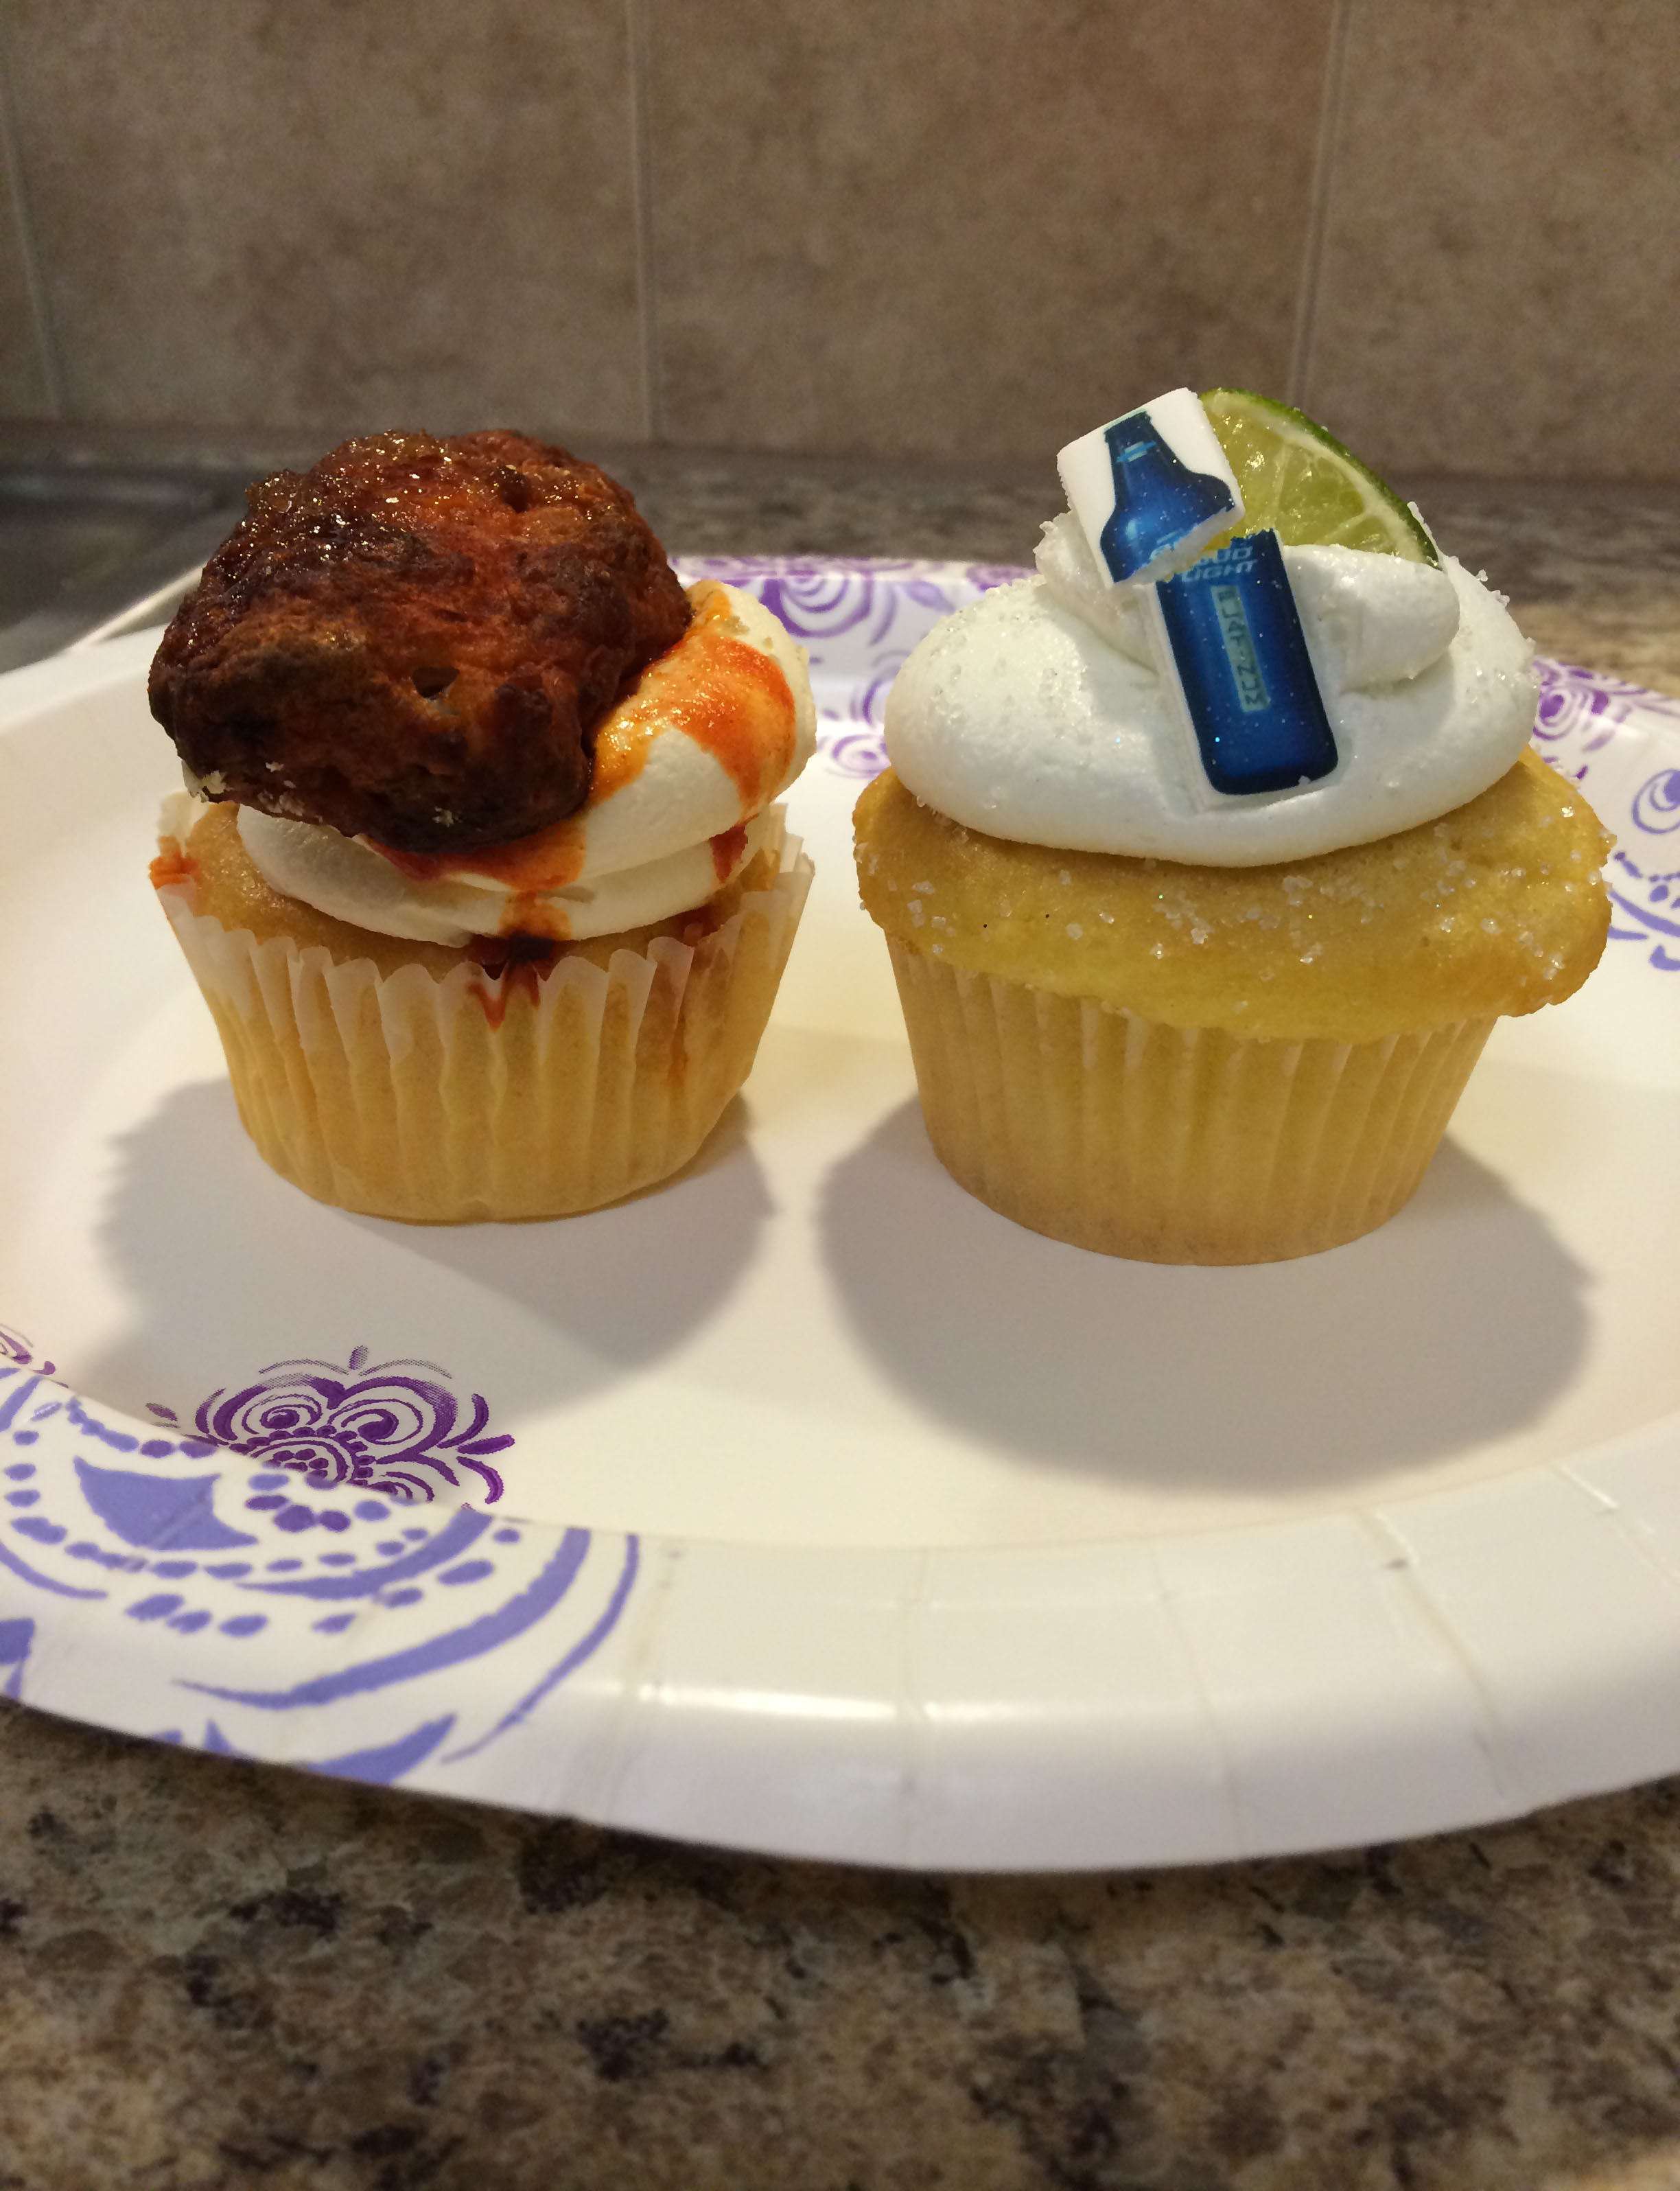 Here is a closer look at the famous Coccadotts cupcakes...chicken wing on the left and Bud Light on the right.